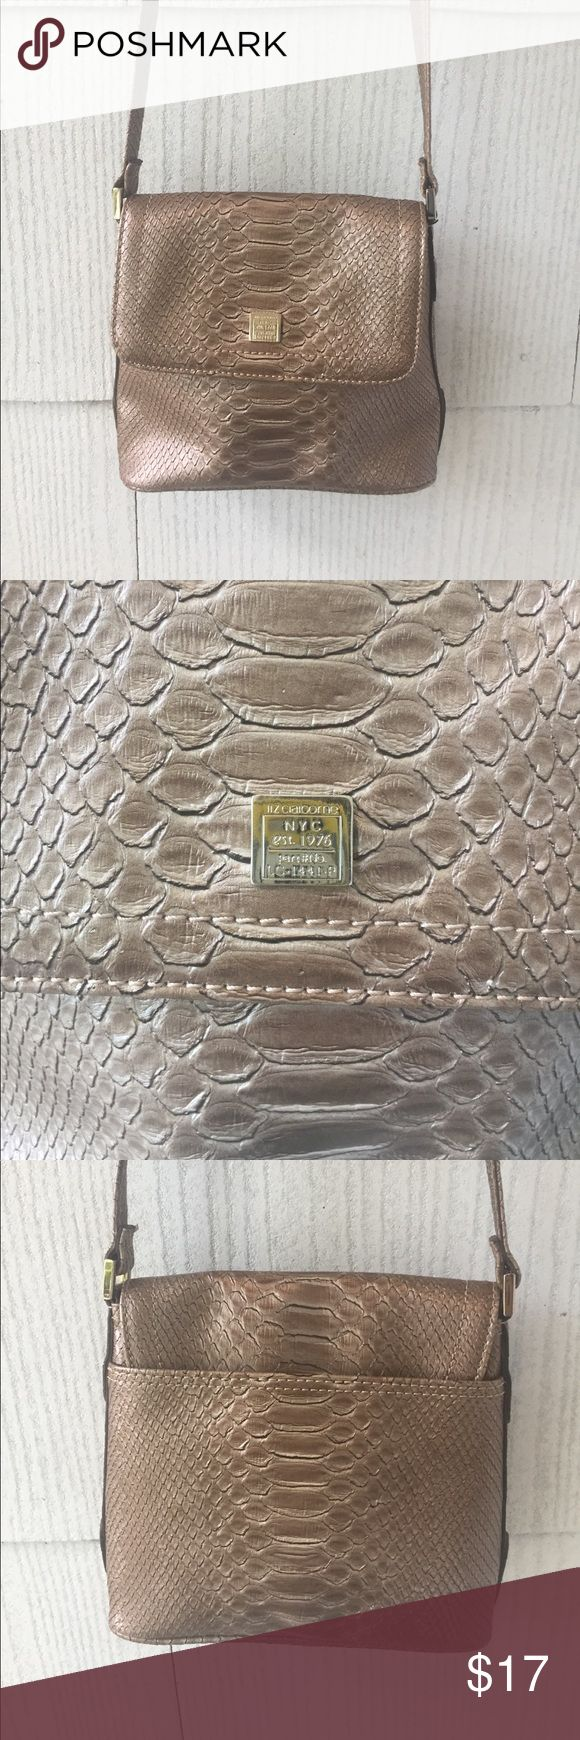 Liz Claiborne Gold Croc Crossbody Like new and adorable crossbody in pretty gold crocodile pattern. Liz Claiborne Bags Crossbody Bags